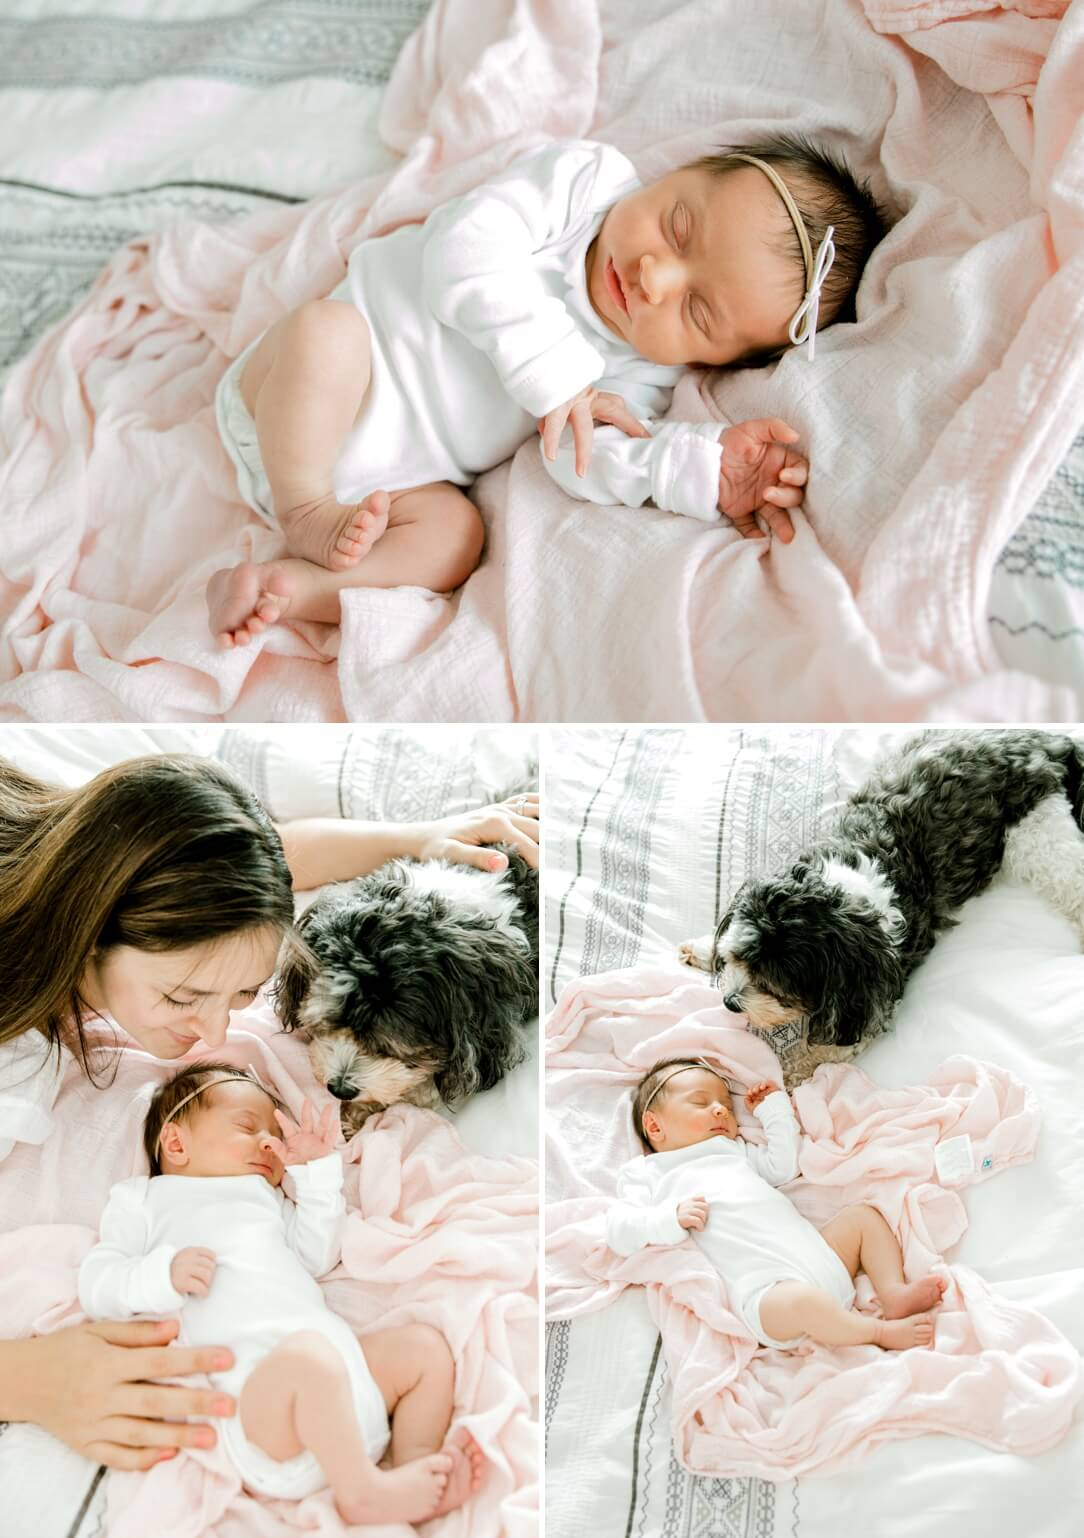 newborn baby girl laying on a bed with her mom and a dog